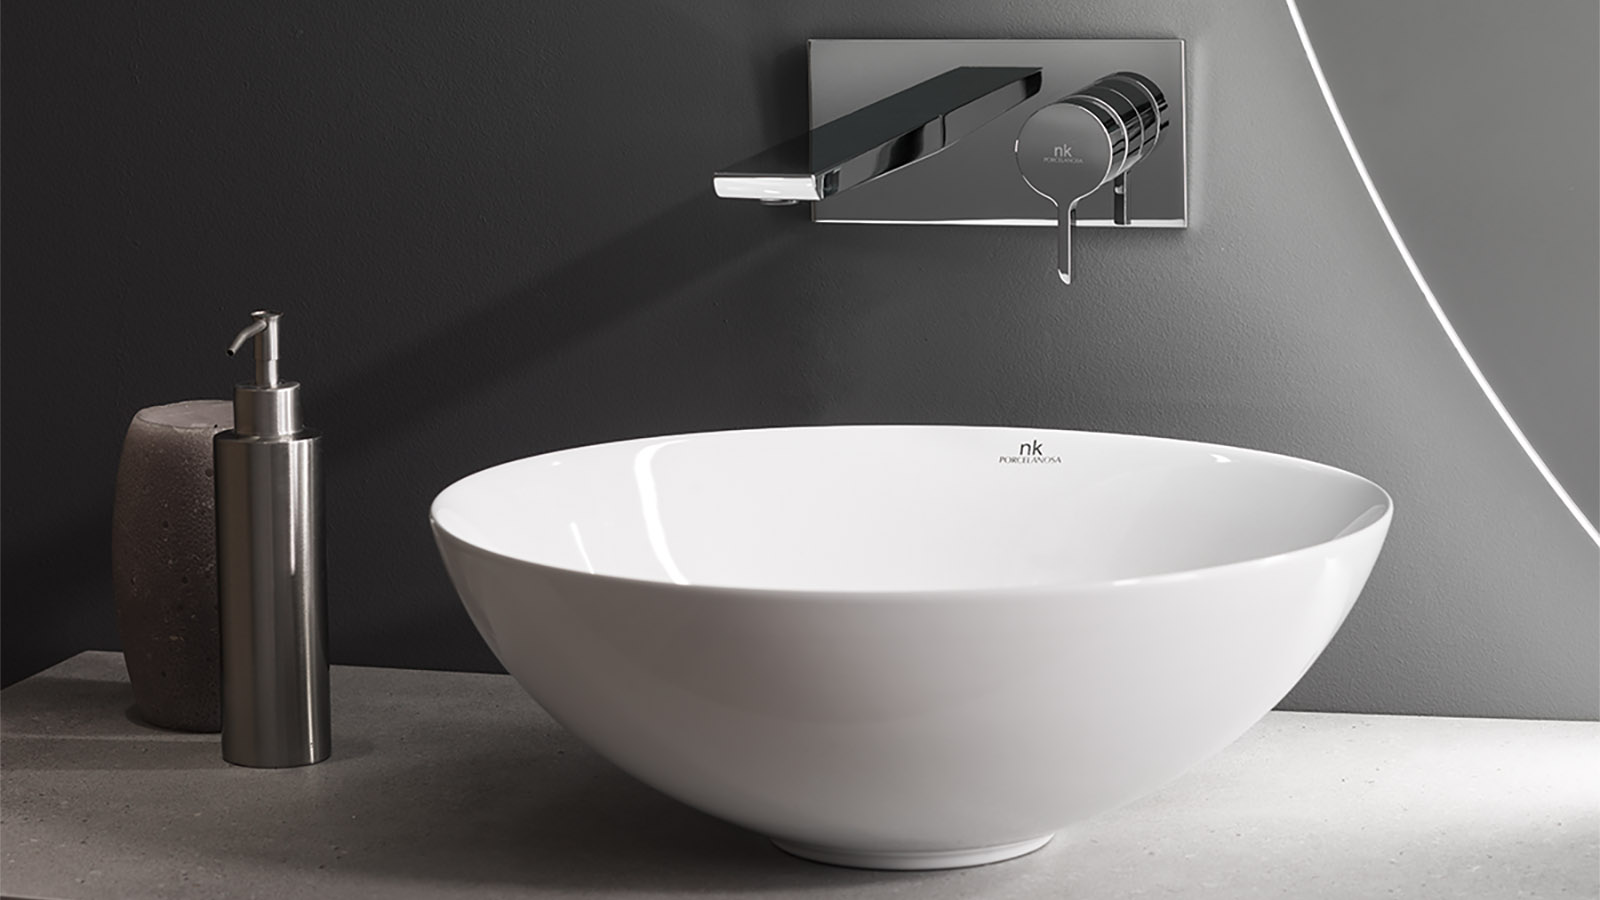 'Oxo' by Noken, premium sustainability for the bathroom